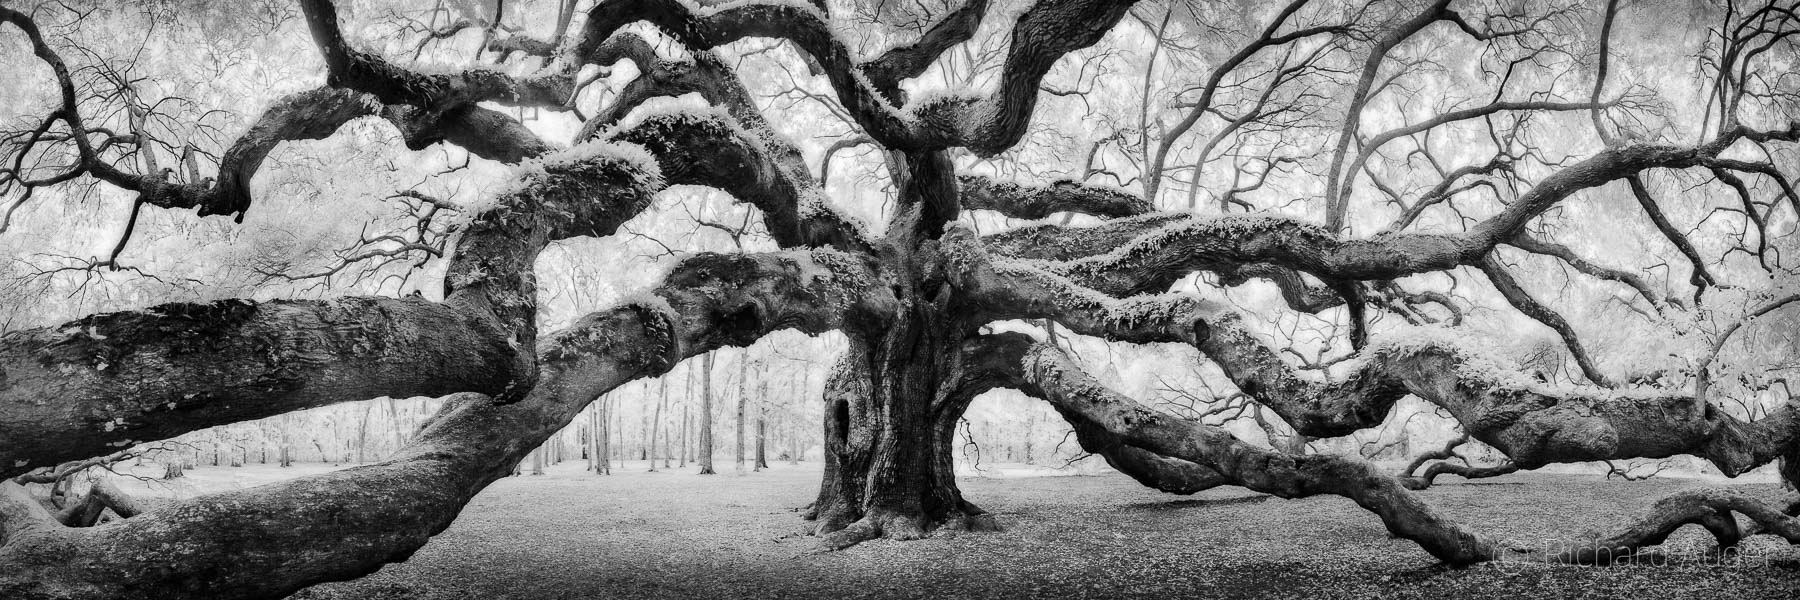 Angel Oak, South Carolina, Oak Tree, Spooky, forest, photographer, landscape, photograph, sepia tone, black and white, panorama